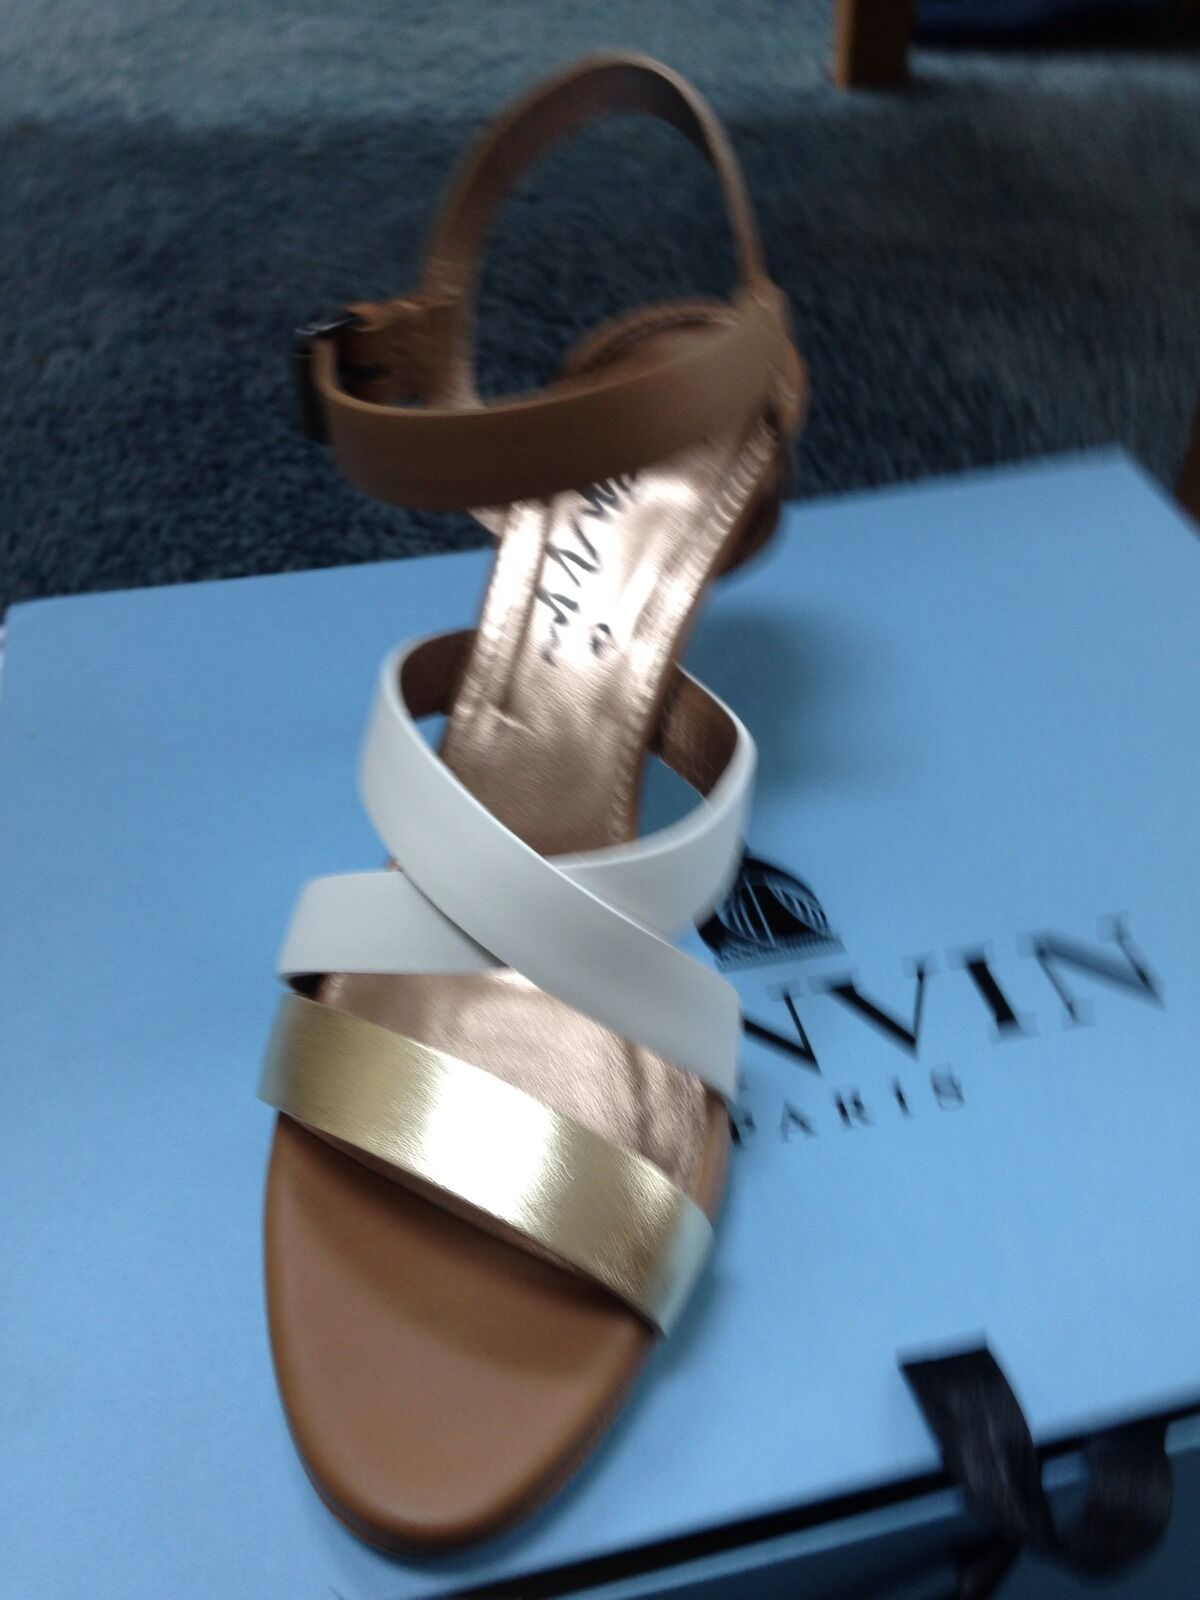 Lanvin Strappy, Pelle, Tan/ White mules High ( 3in. and up), Size 8 New